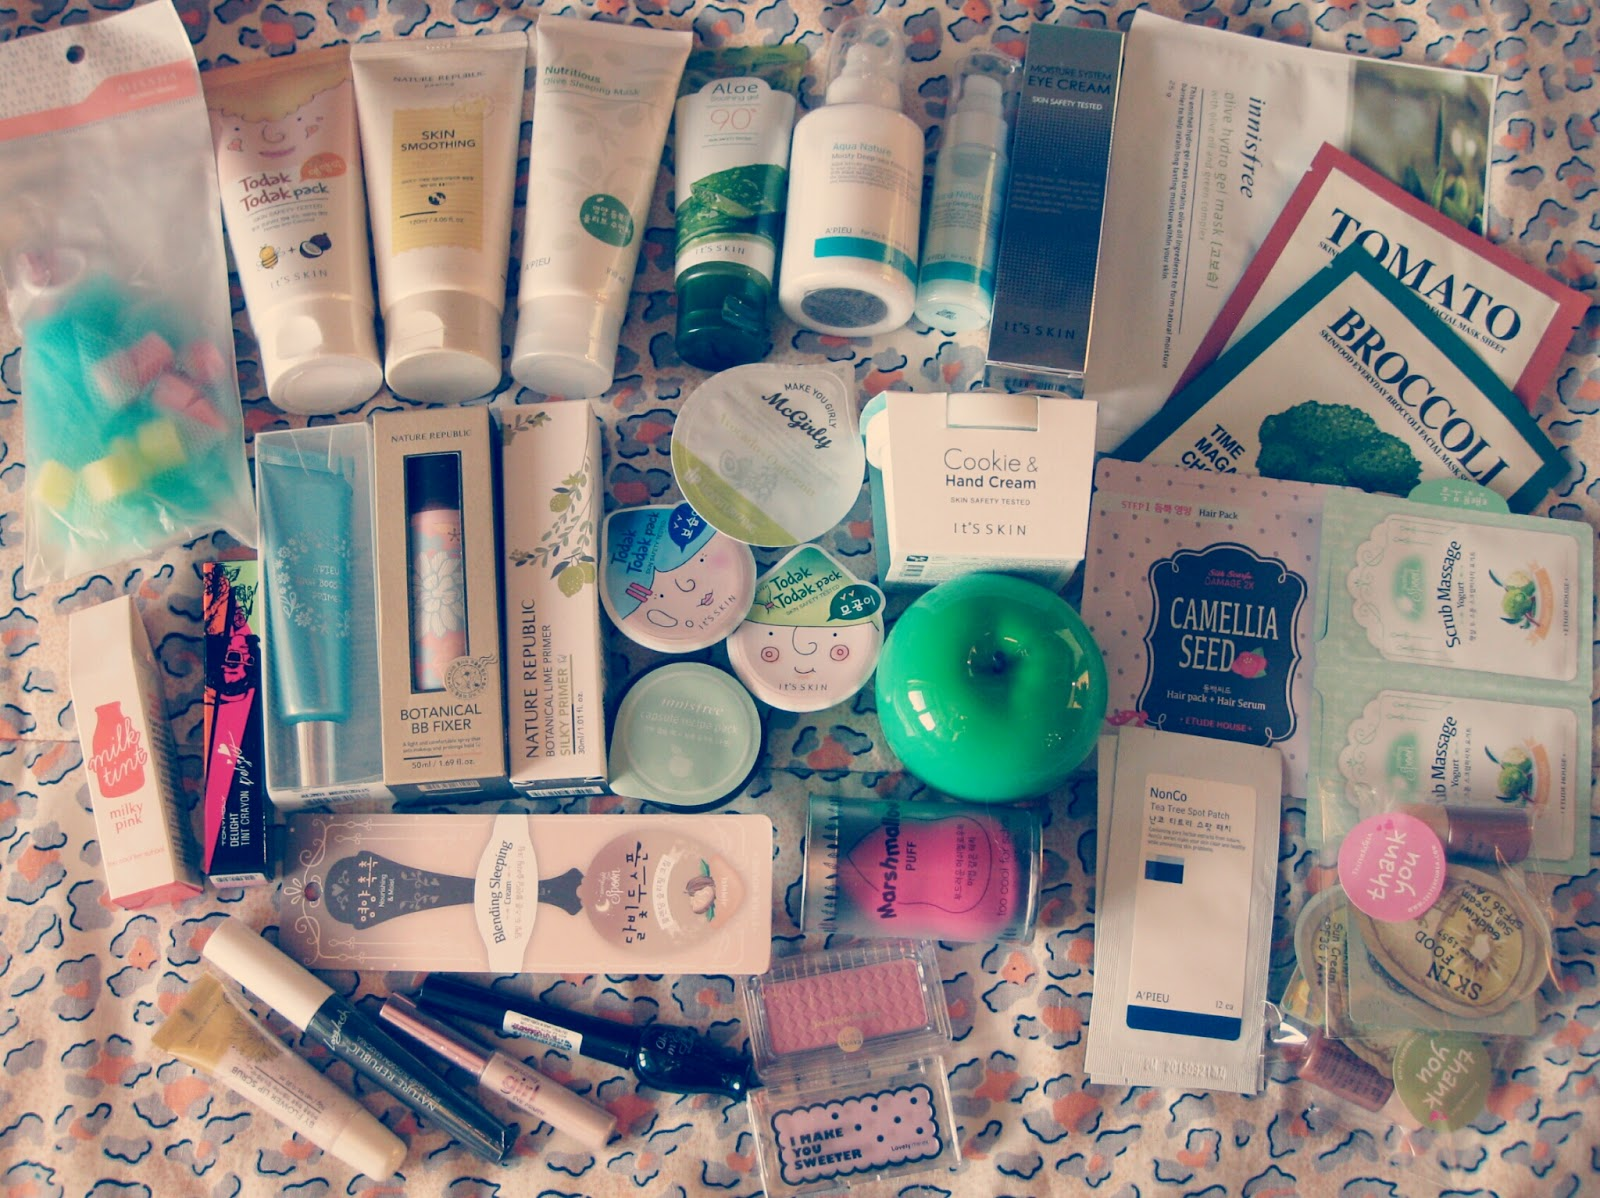 A'PIEU, Etude House, EtudeHouse, Haul, Holika Holika, HOLIKAHOLIKA, Innisfree, it's skin, Korea, Missha, Nature Republic, Skinfood, testerkorea, THEFACESHOP, Tony Moly, TonyMoly, TOO COOL for SCHOOL, Покупки